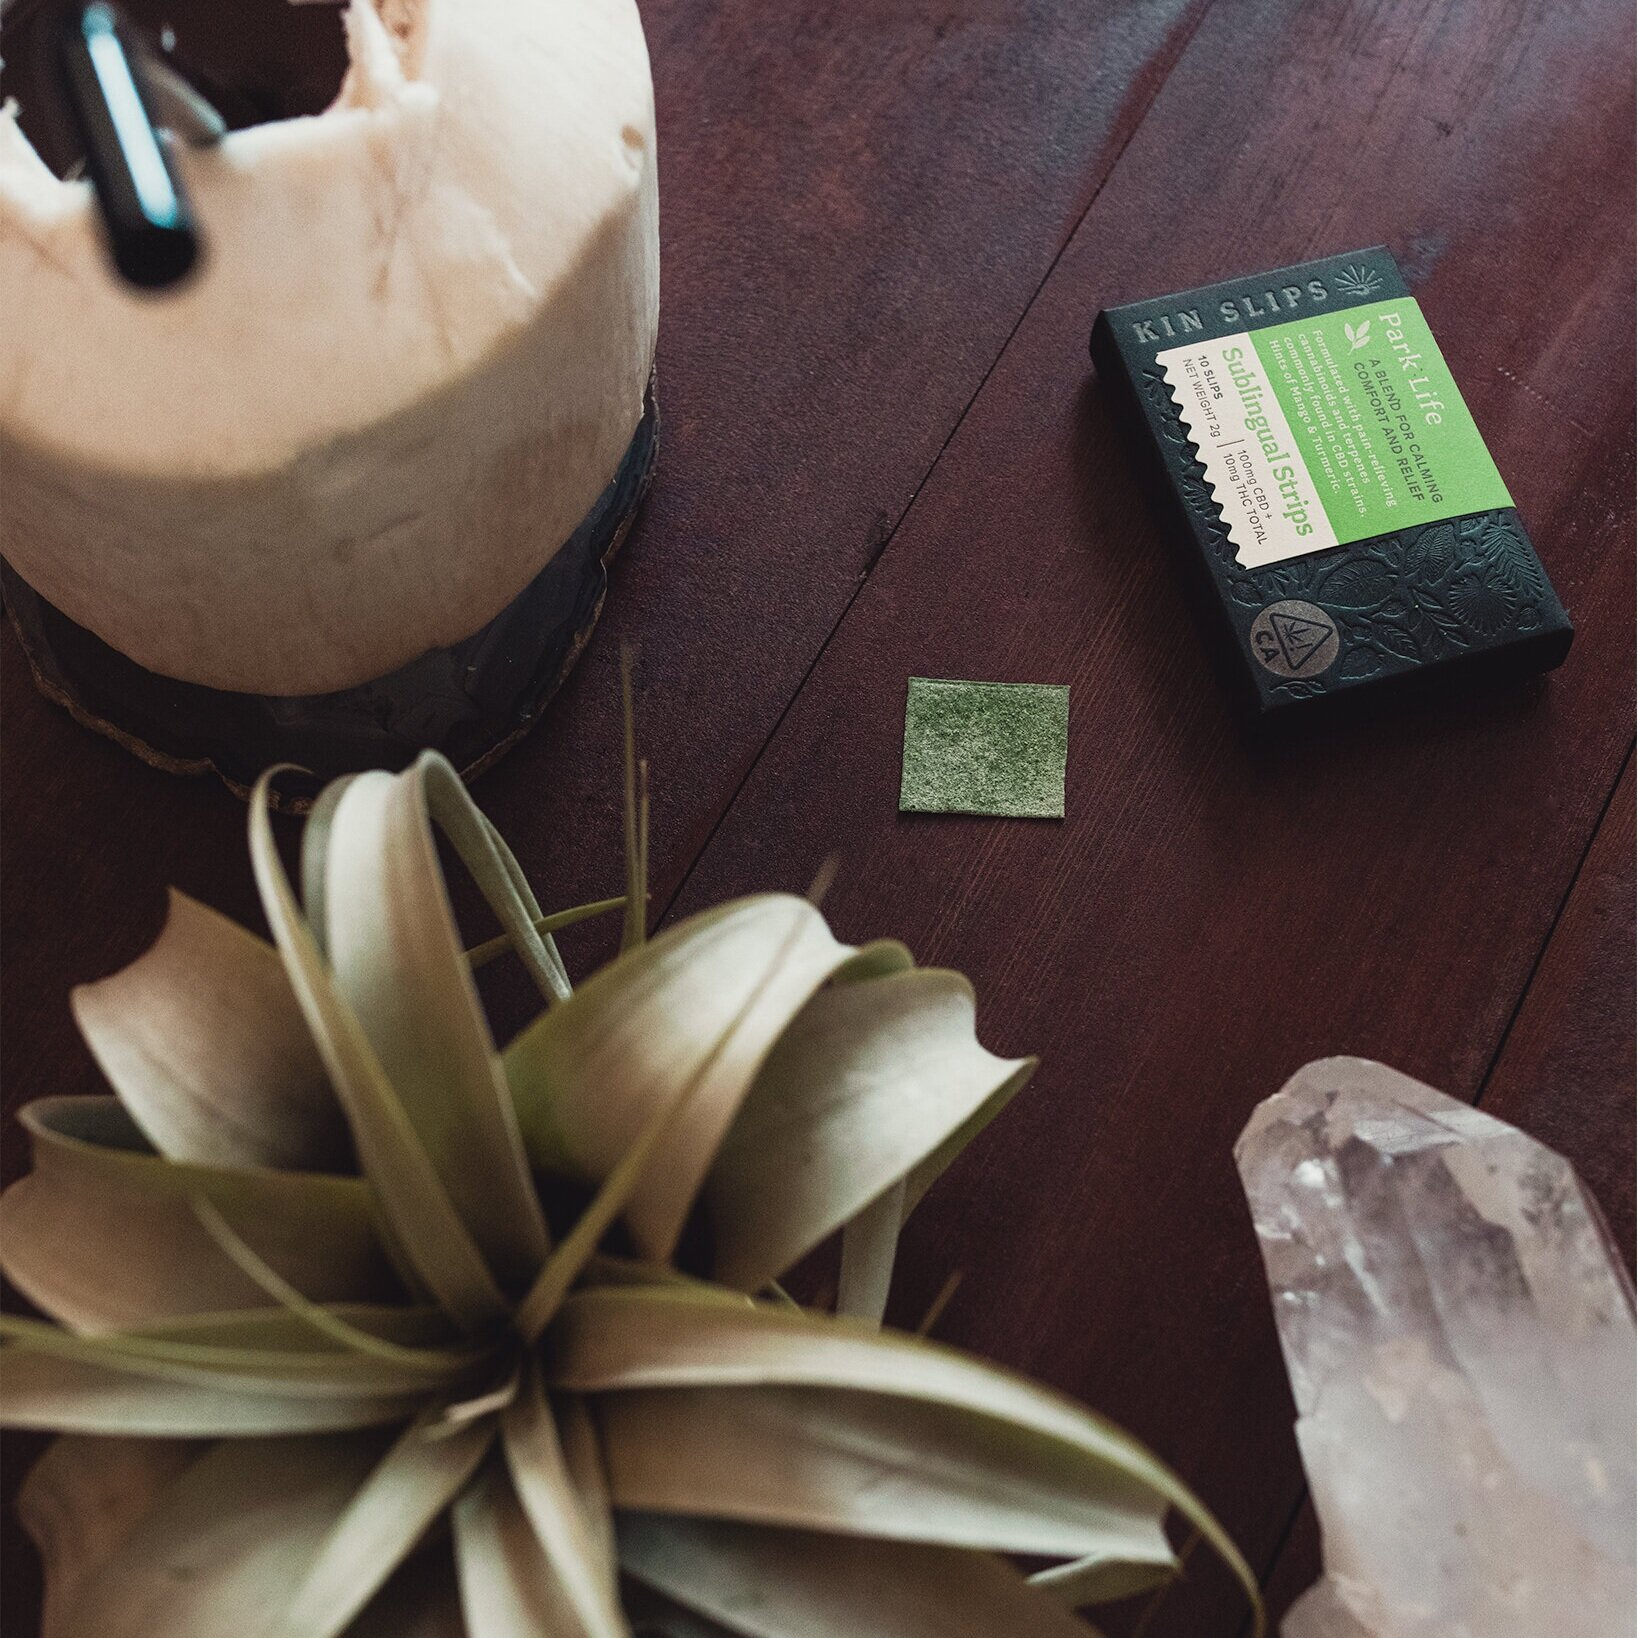 Kin Slips Sublingual Strips - I couldn't post this blog without mentioning our own product. Kin Slips dissolve under your tongue and start working in about 10 minutes. Blends available for creativity, relaxation, and relief.